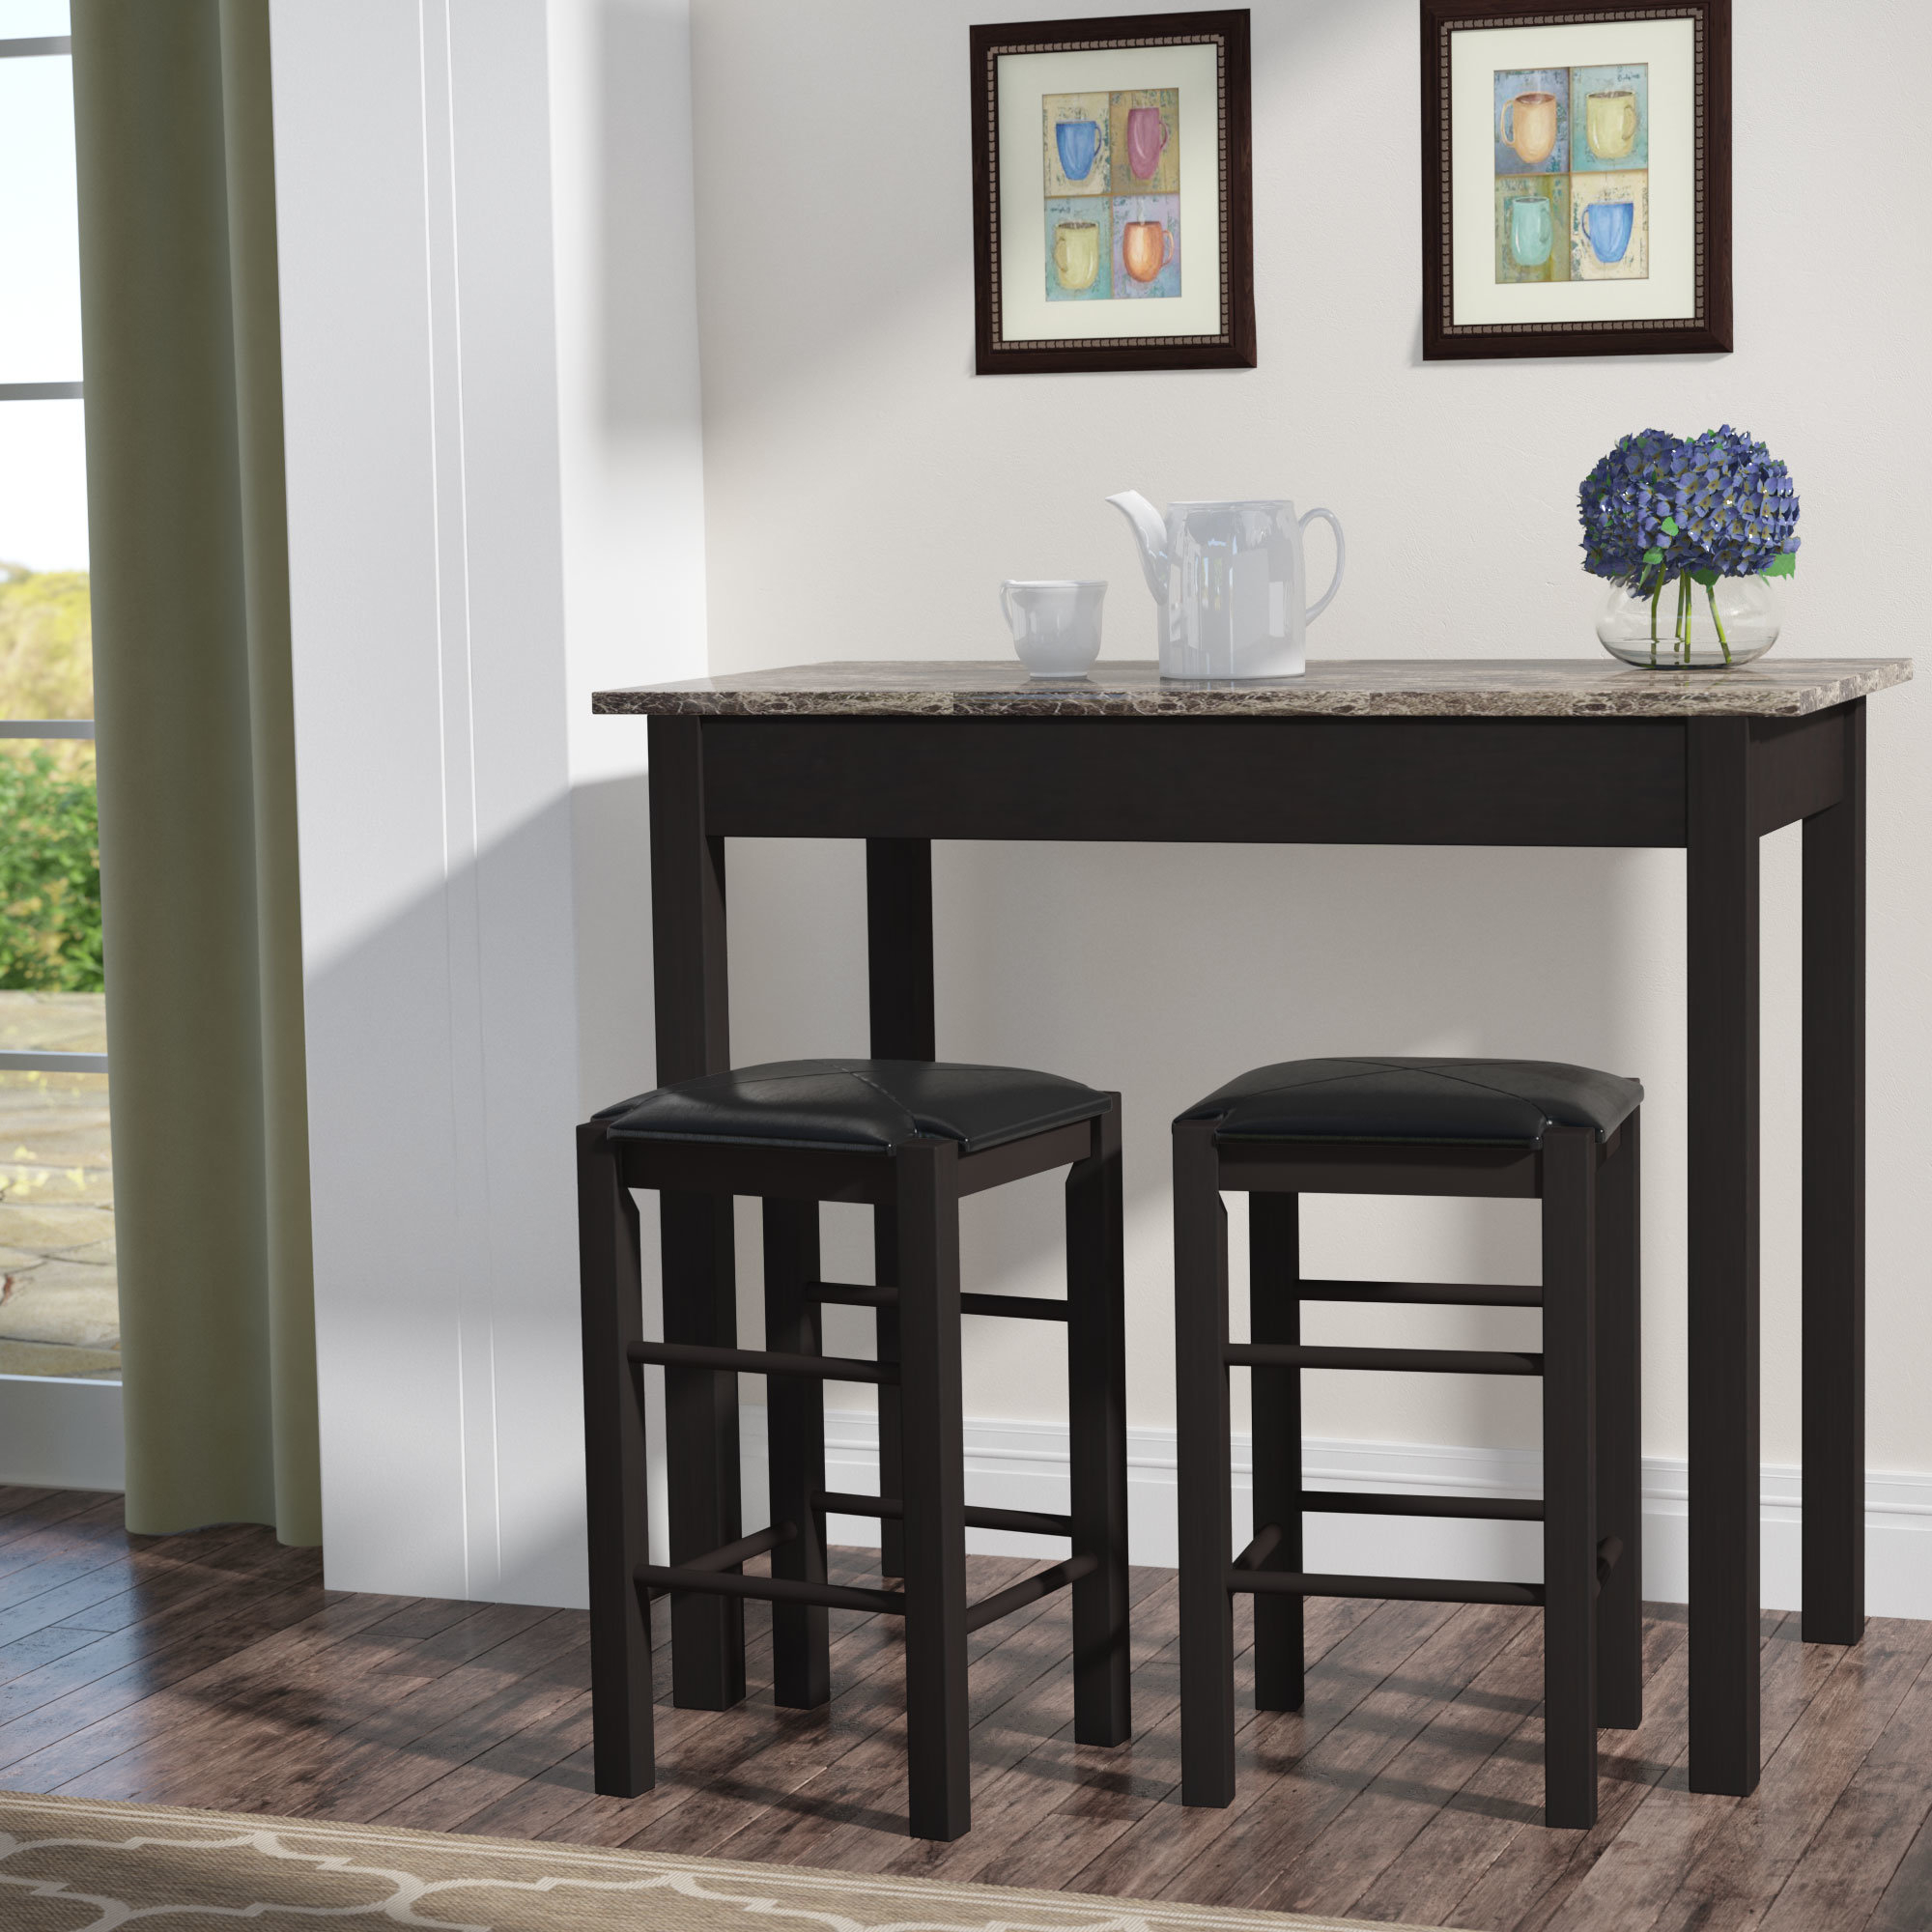 Miskell 3 Piece Dining Sets Regarding Current Winston Porter Sheetz 3 Piece Counter Height Dining Set & Reviews (View 9 of 25)